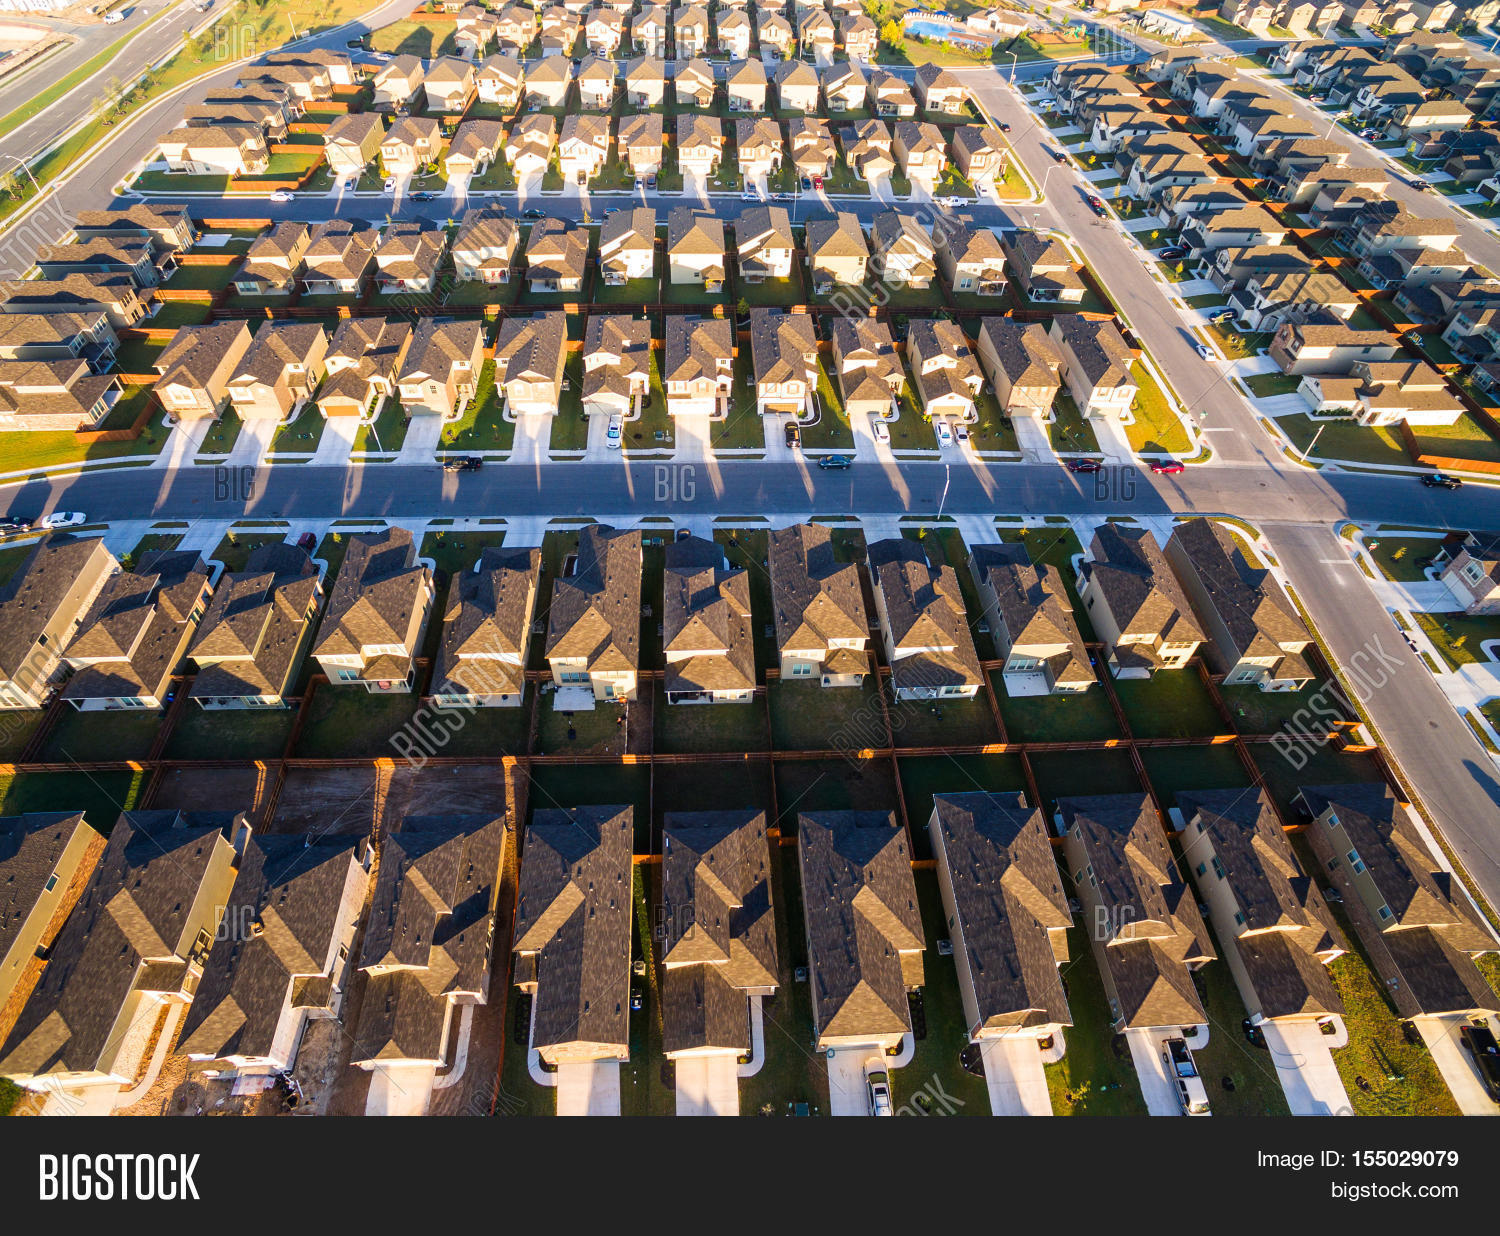 Rows rows cookie cutter houses image photo bigstock for Cookie cutter house plans